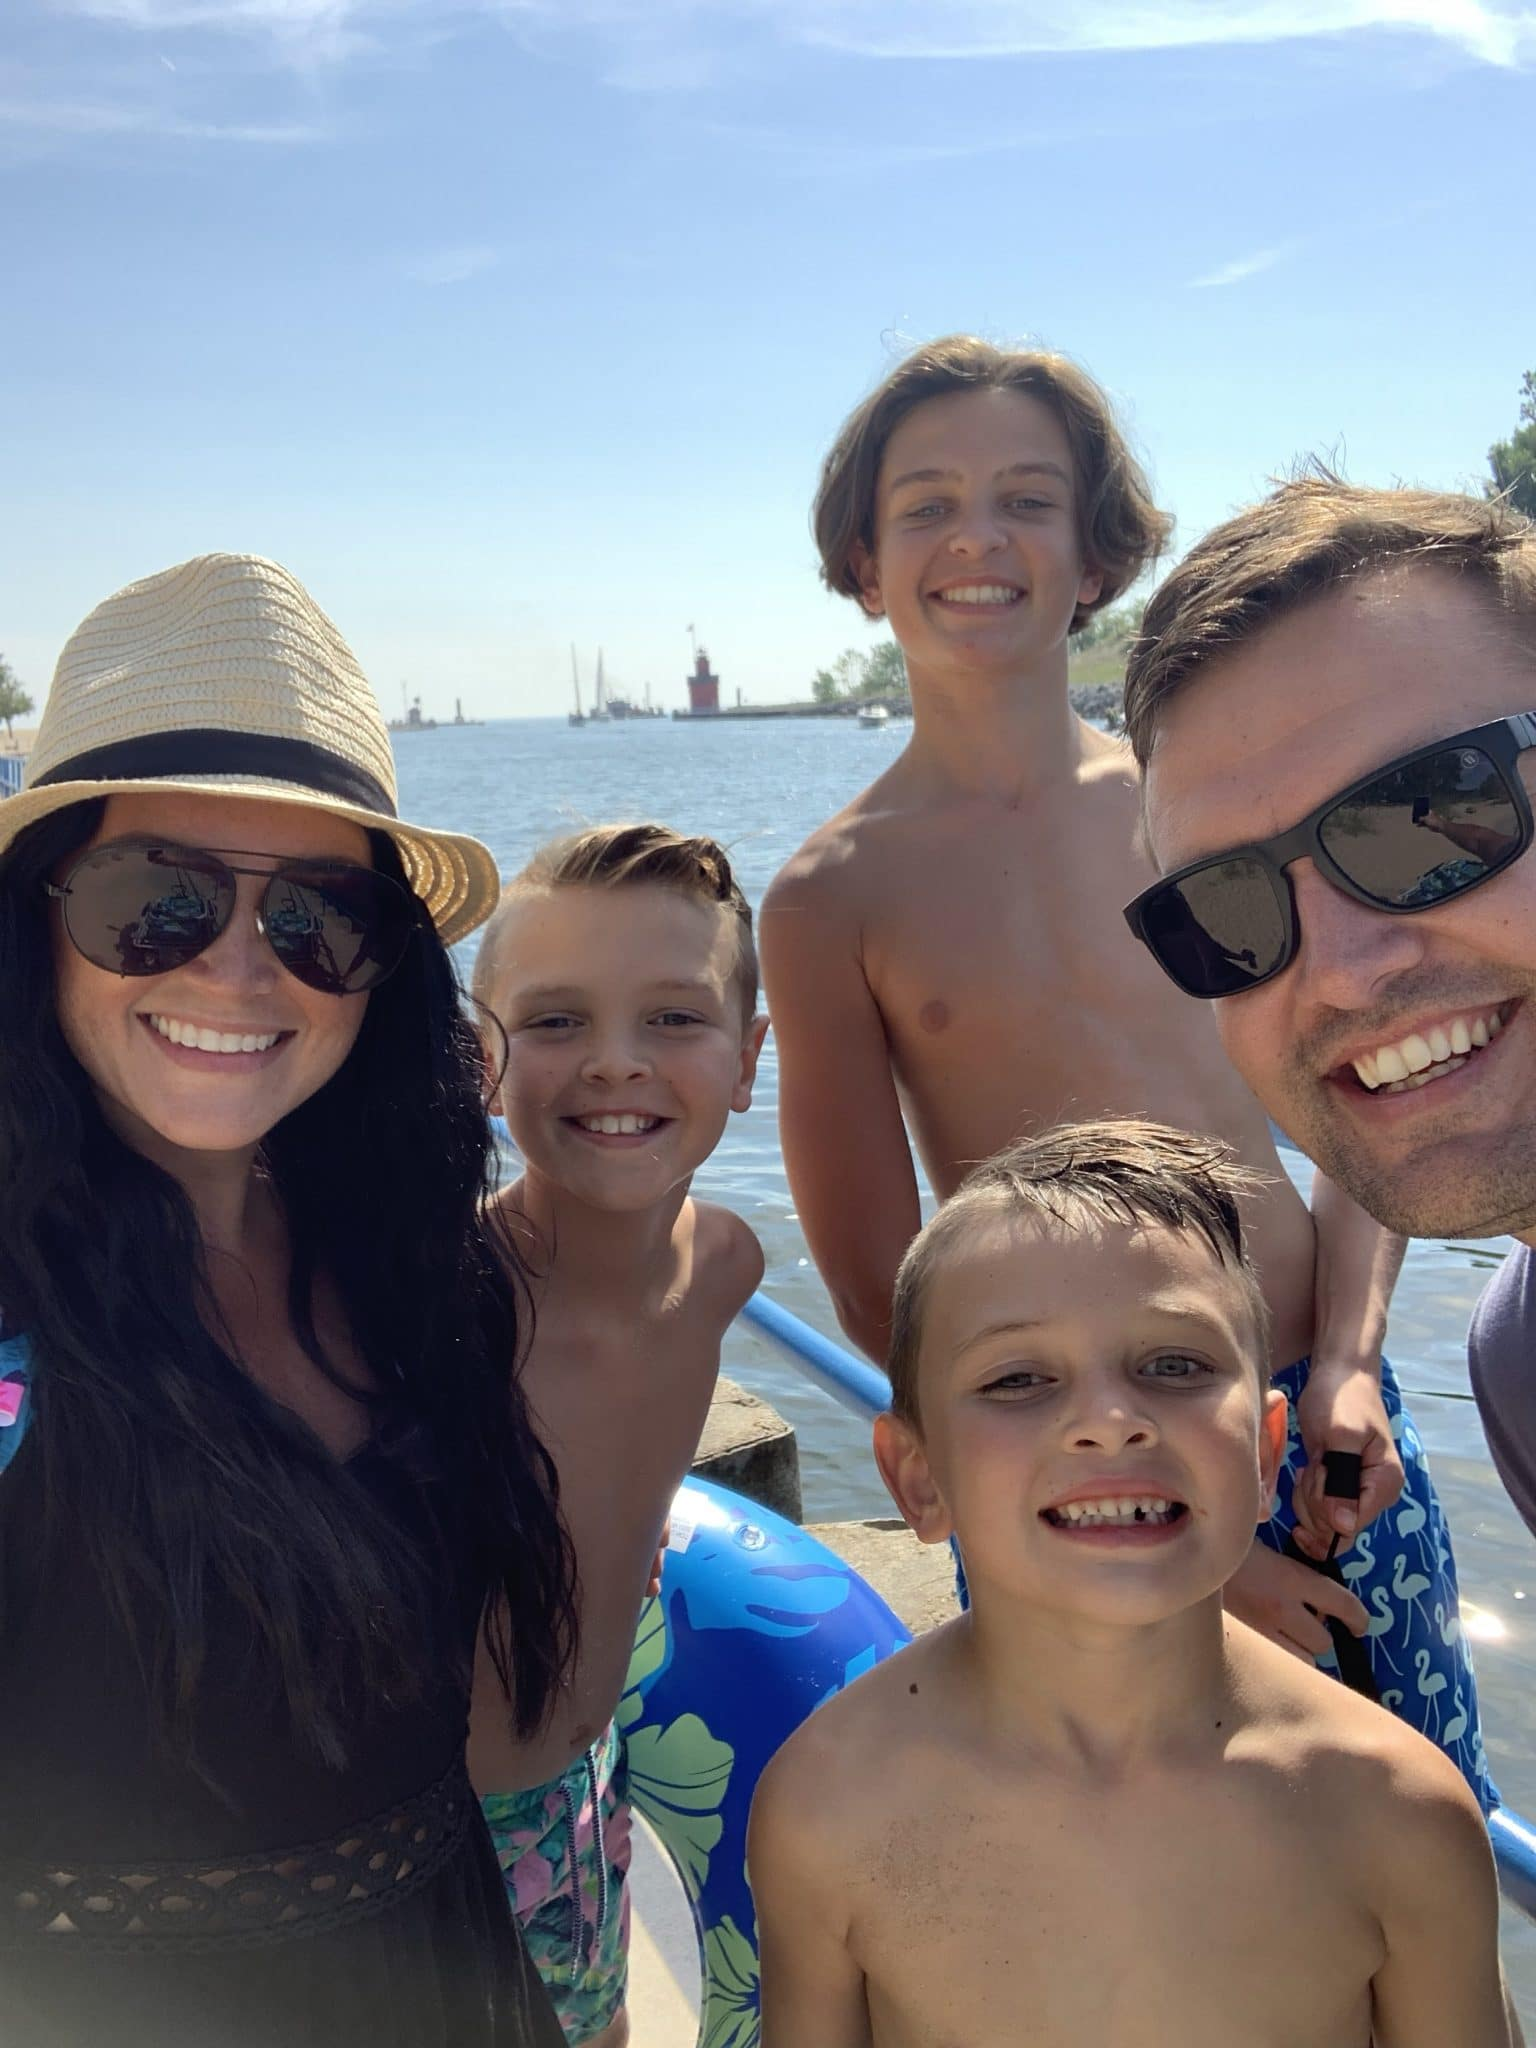 Moving, family adventures, Lake Michigan, Holland Michigan beach, Stilettos and Diapers